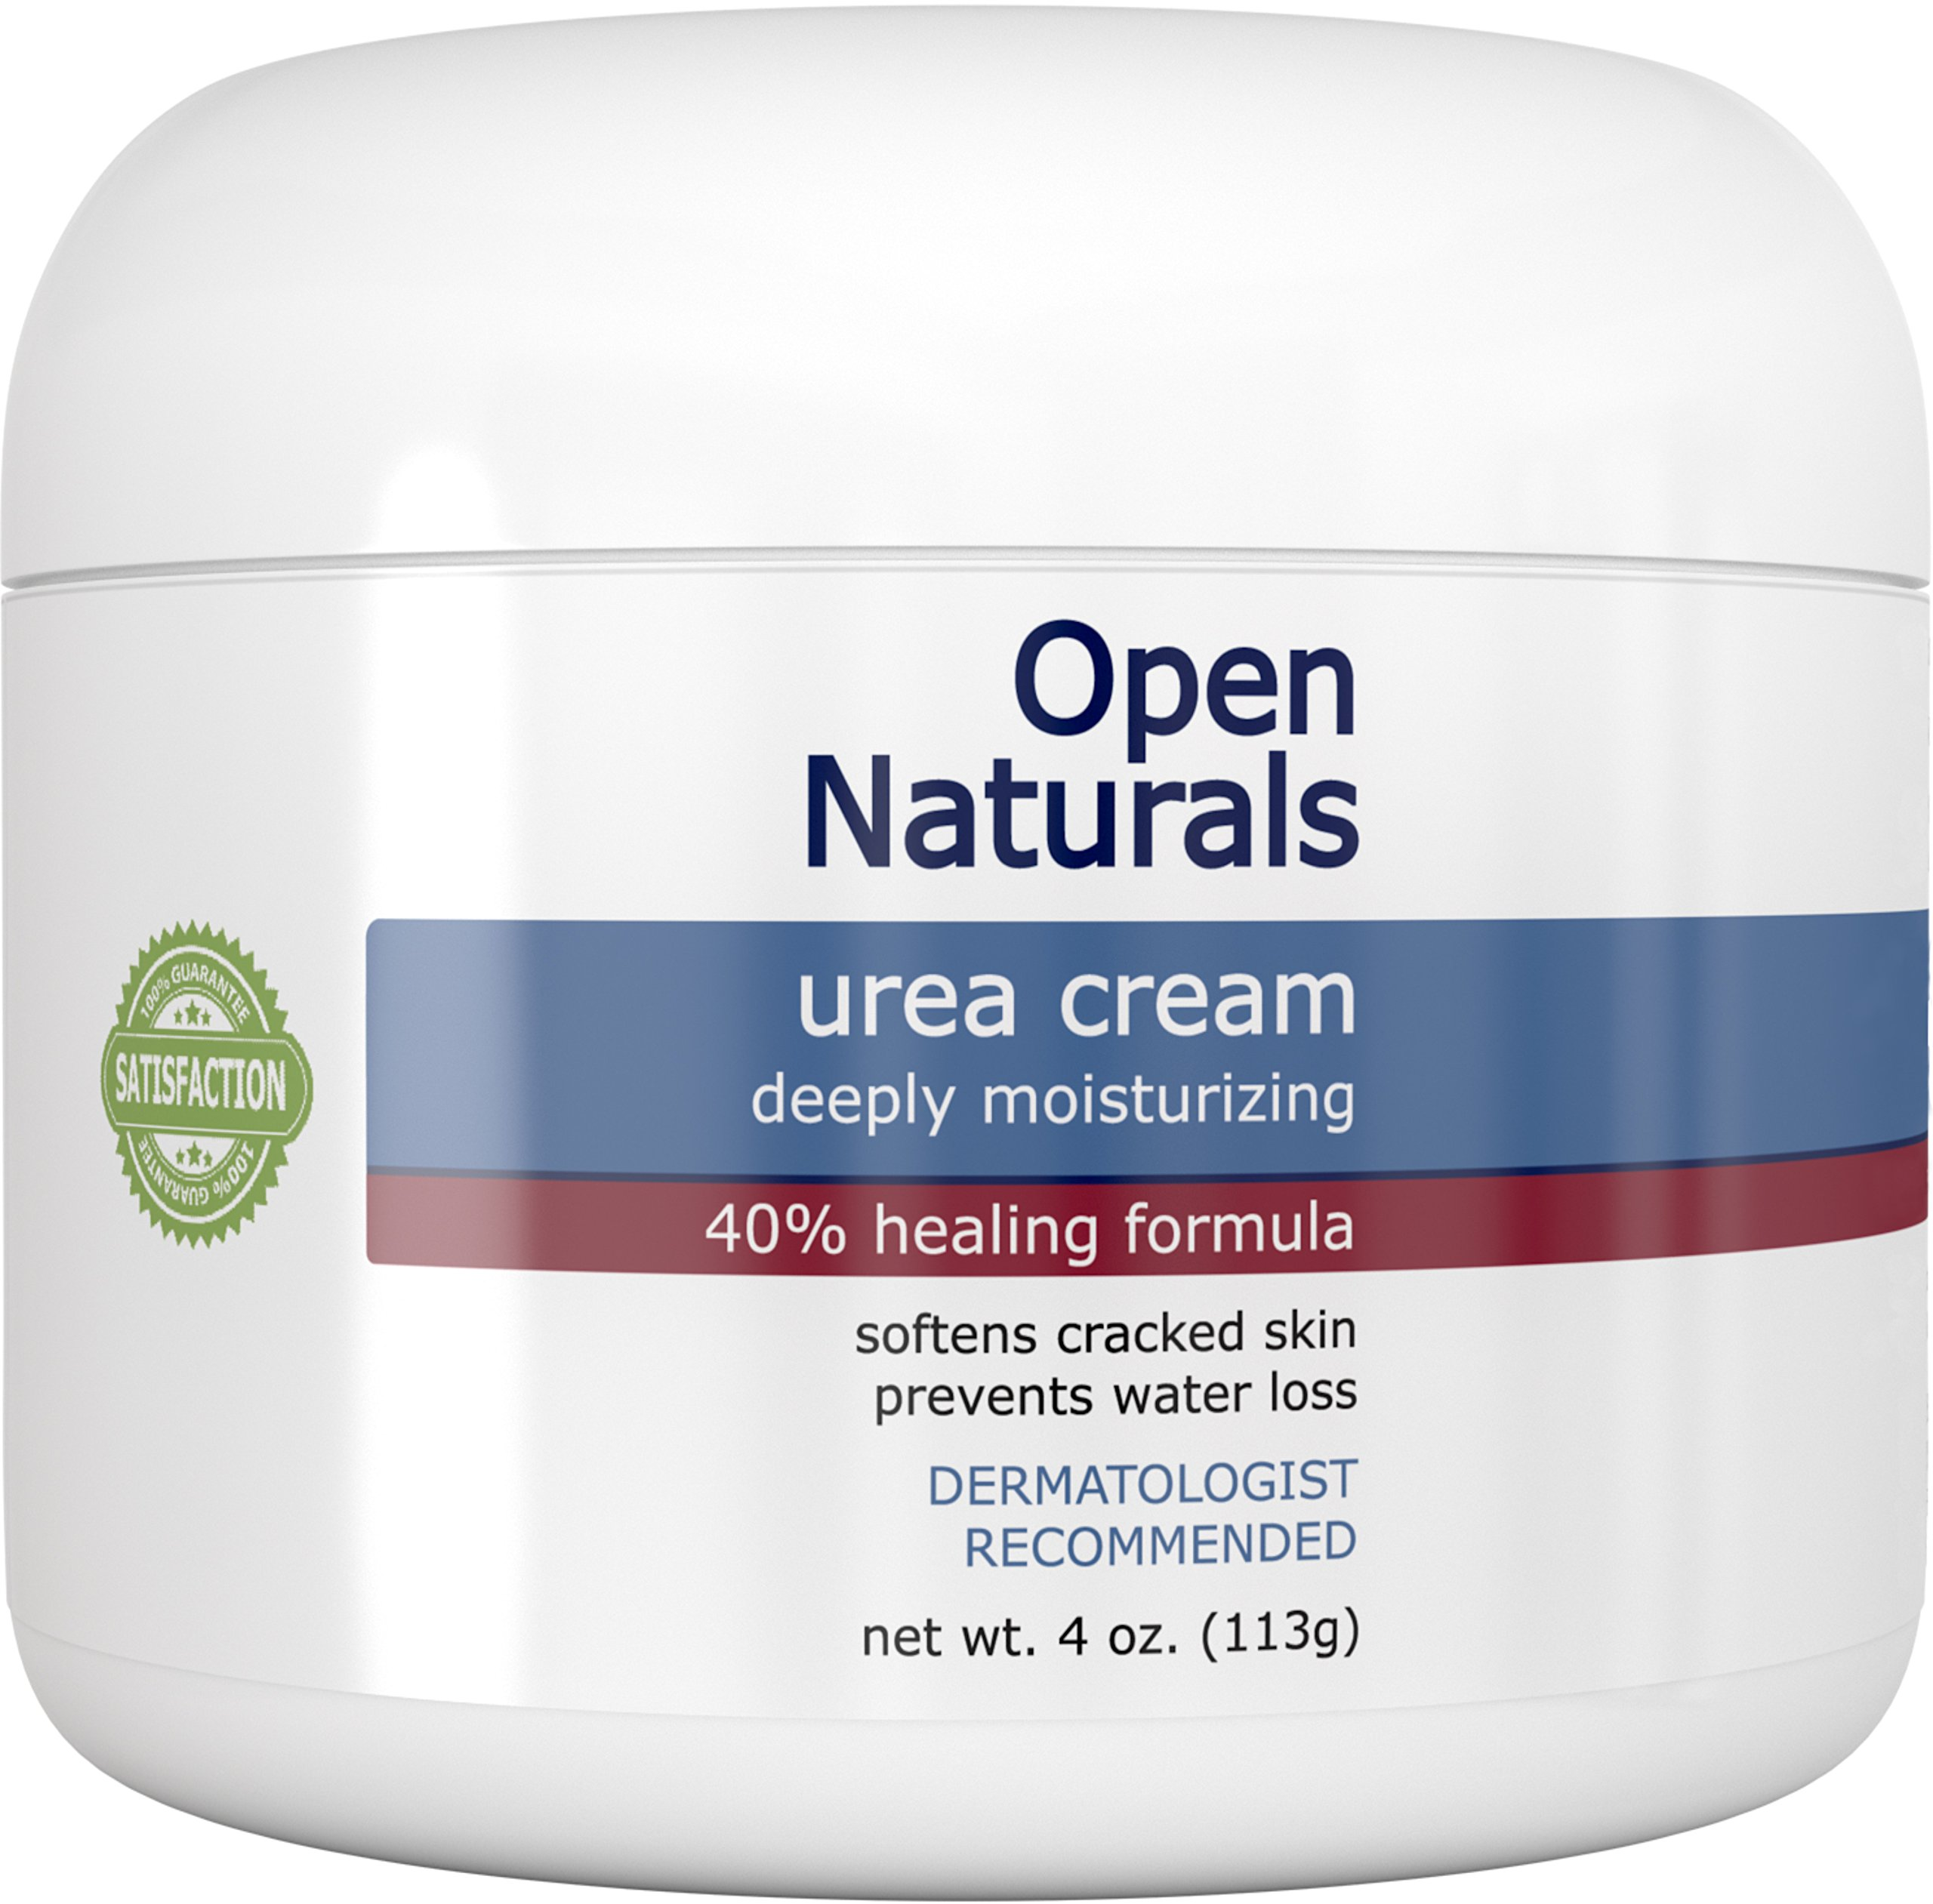 Open Naturals Urea 40% Foot Cream - 4 oz - Premium Callus Remover - Moisturizes and Rehydrates Thick, Cracked, Rough, Dead and Dry Skin - Elbow, Feet - Your Satisfaction or 100% Money Back Guarantee by Open Naturals